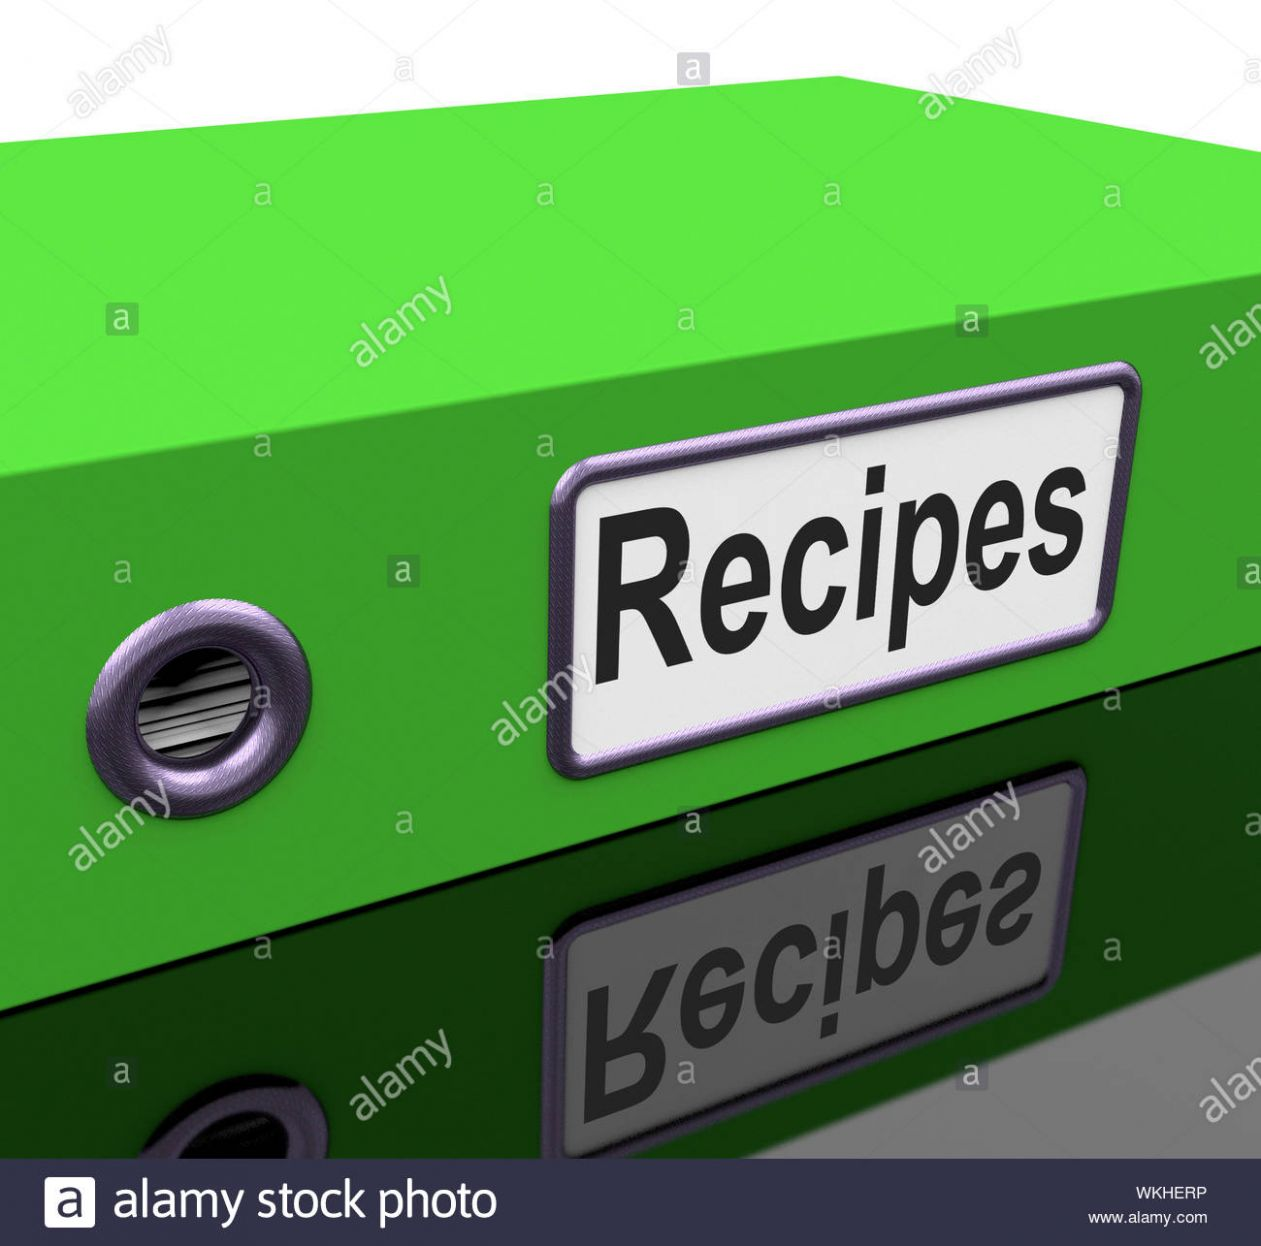 File Recipes Meaning Food Preparation And Business Stock Photo ..